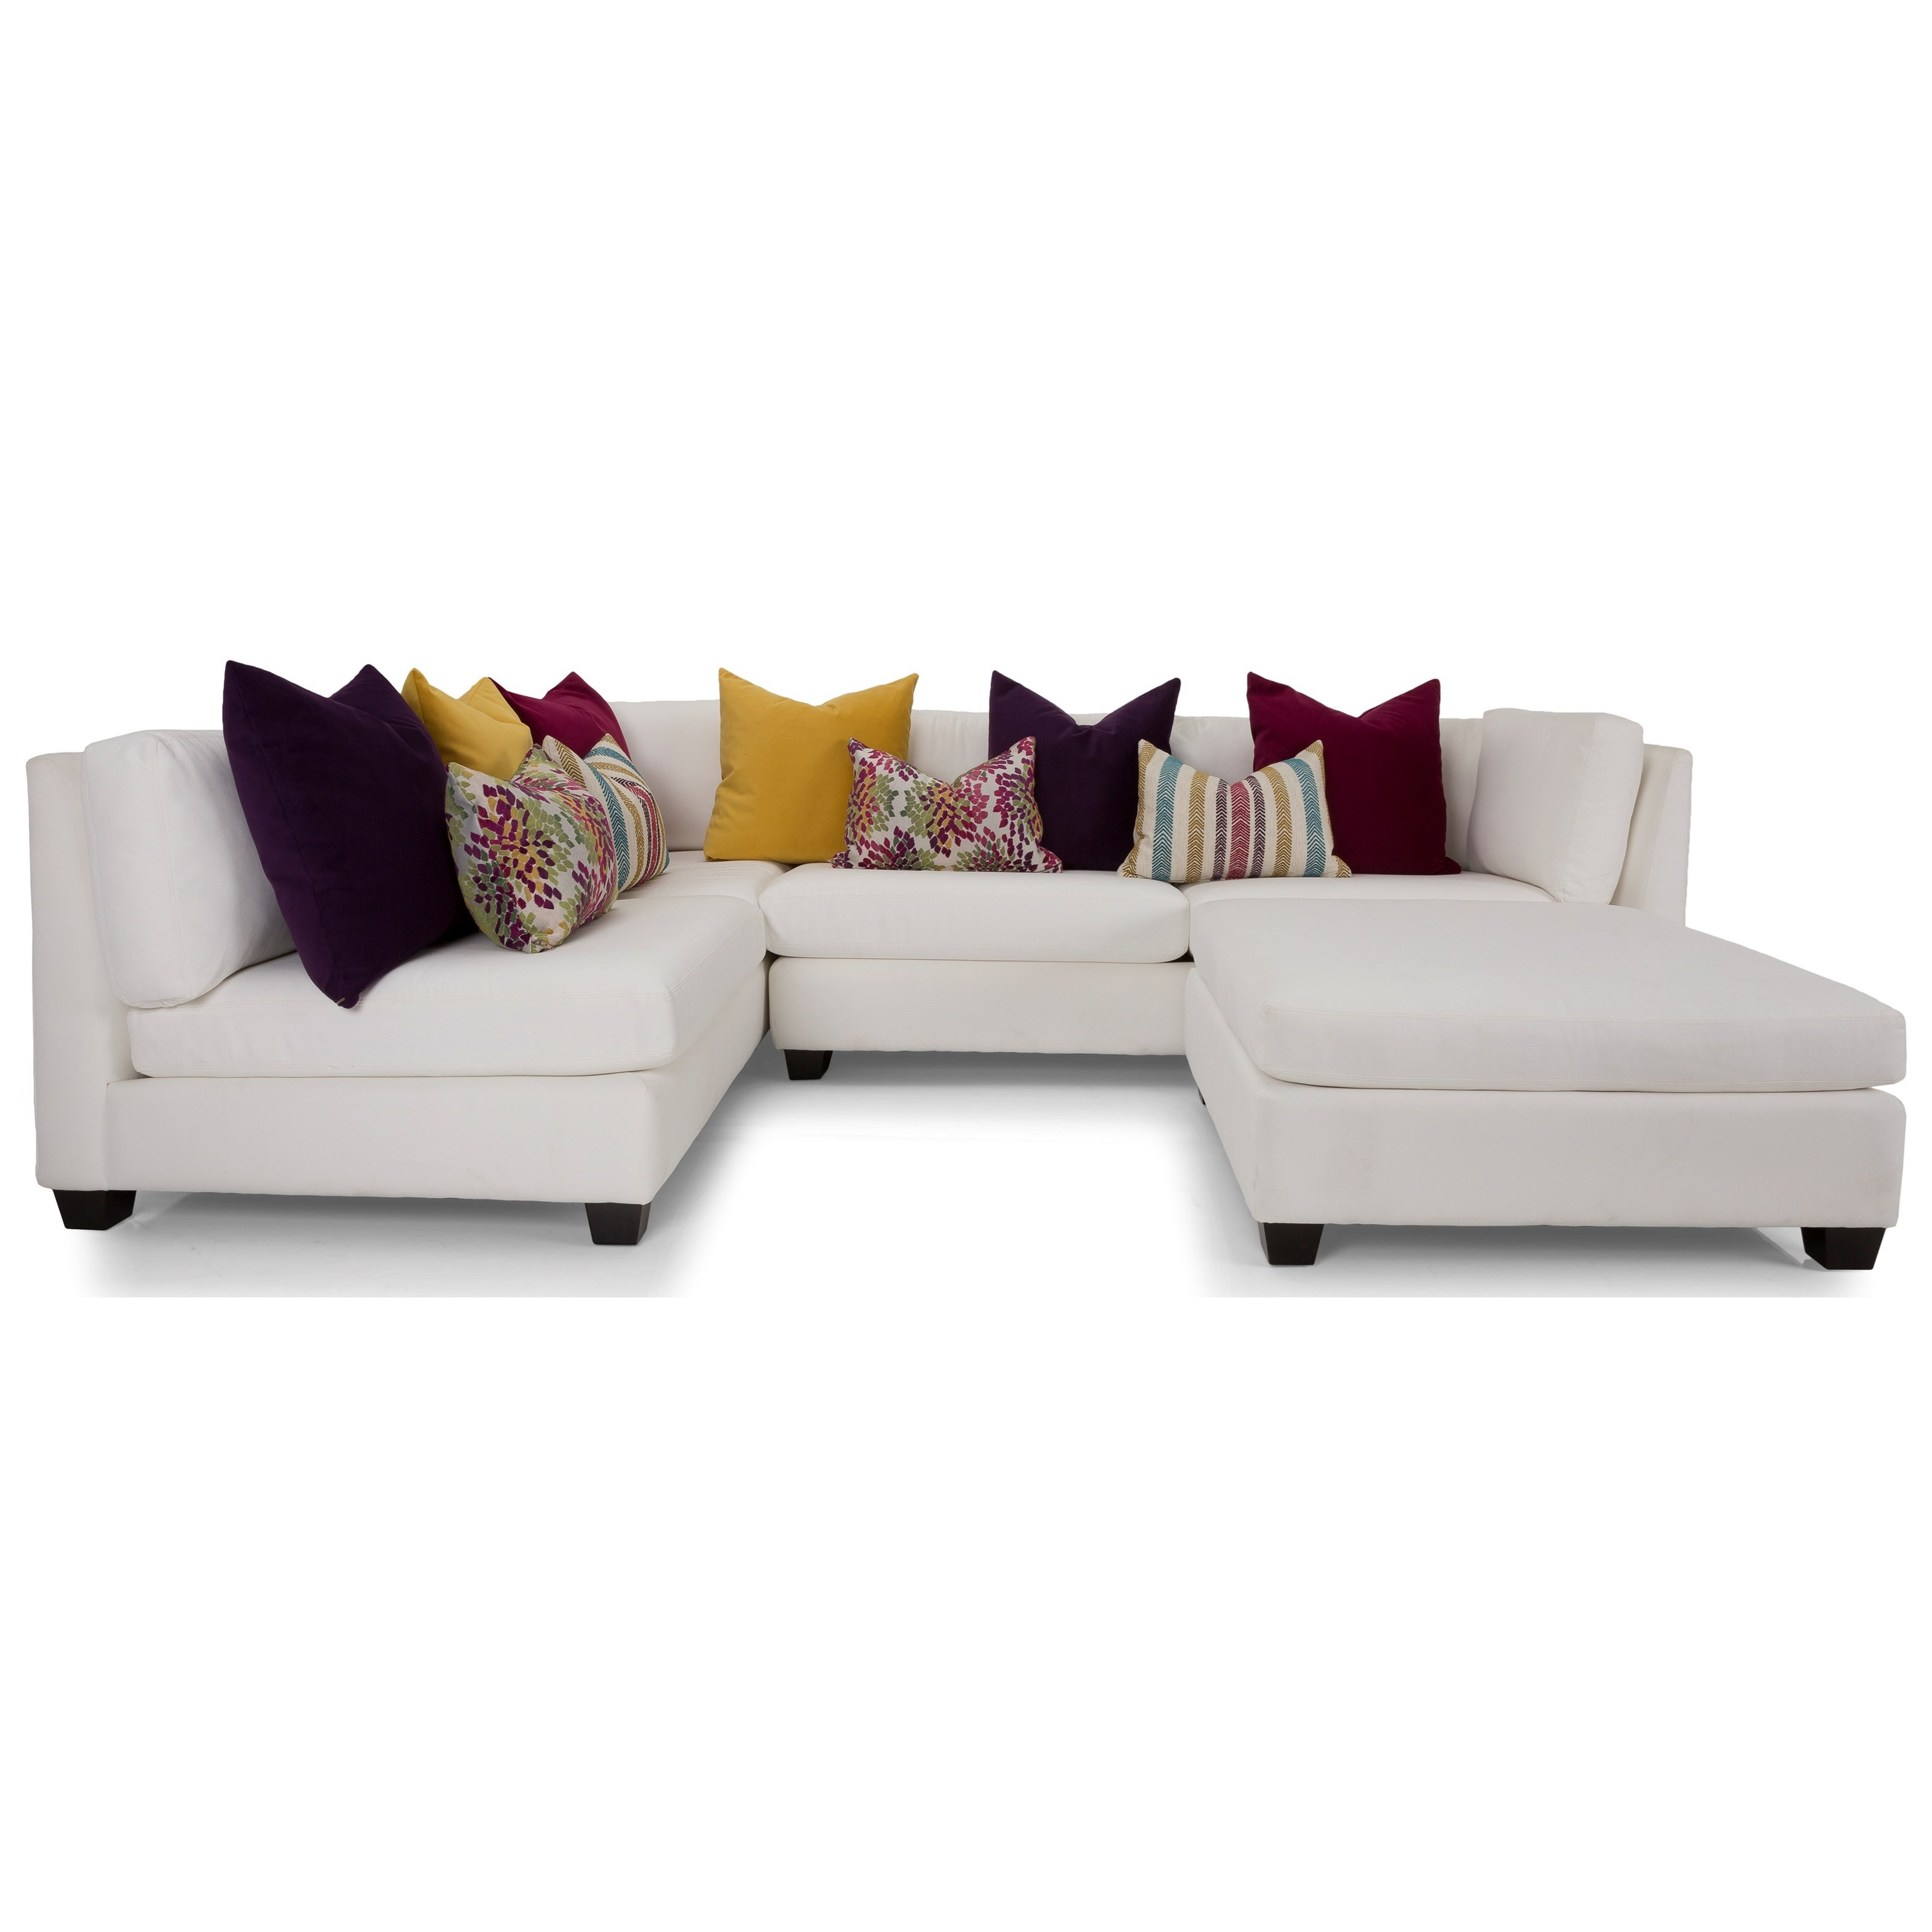 2875 Sectional Sofa by Decor-Rest at Johnny Janosik